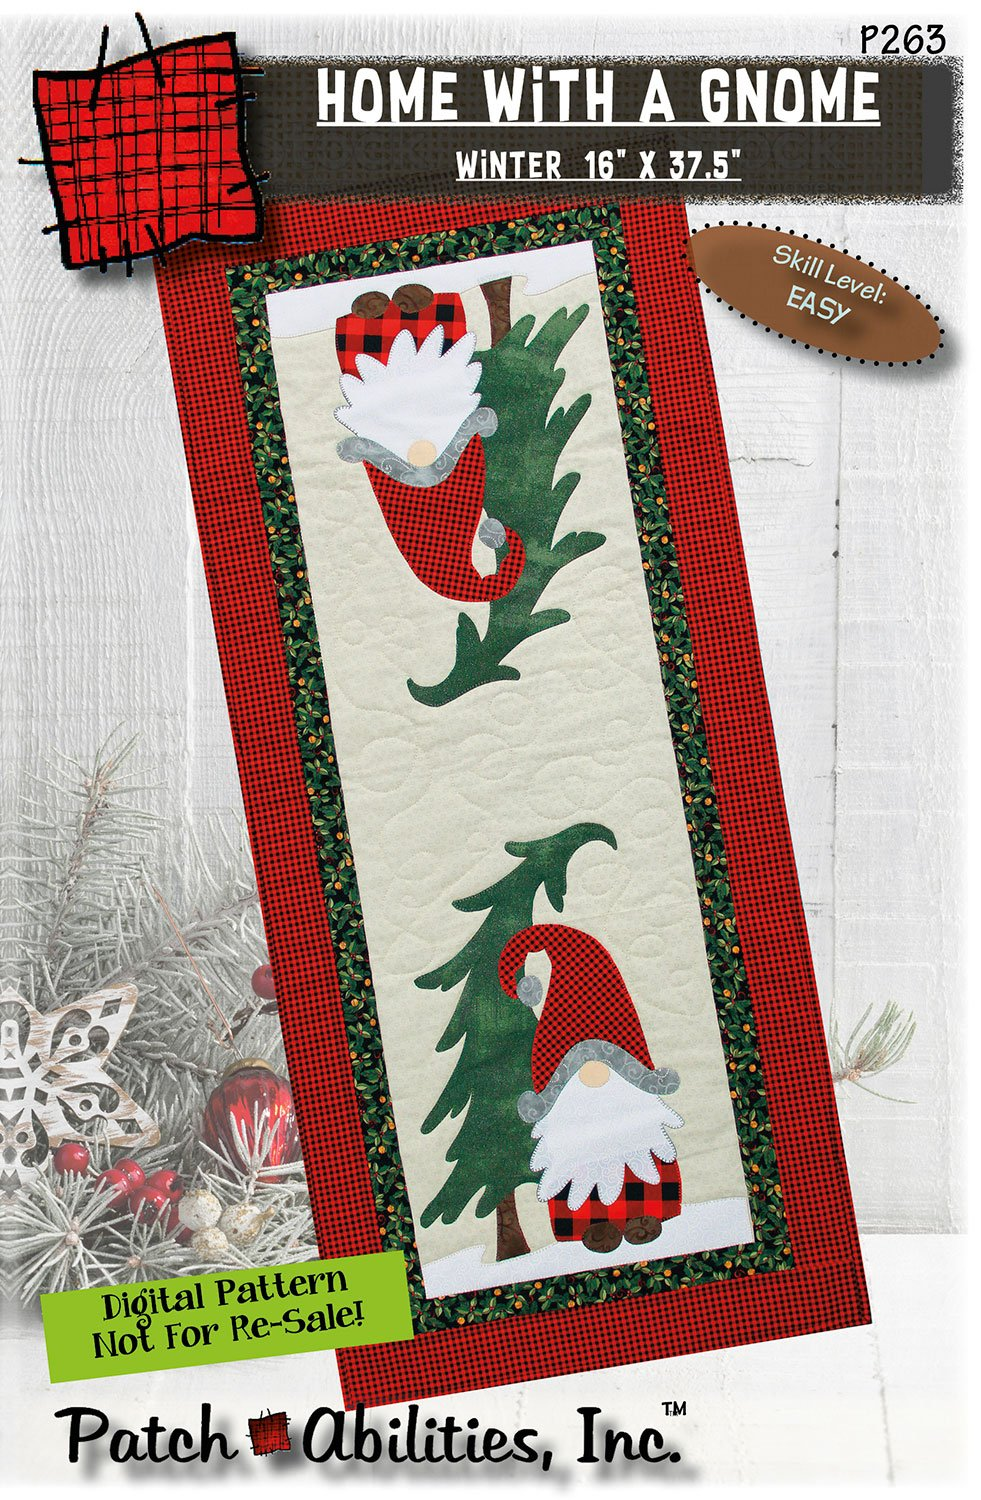 P263 Home With A Gnome Winter Runner DIGITAL DOWNLOAD PATTERN